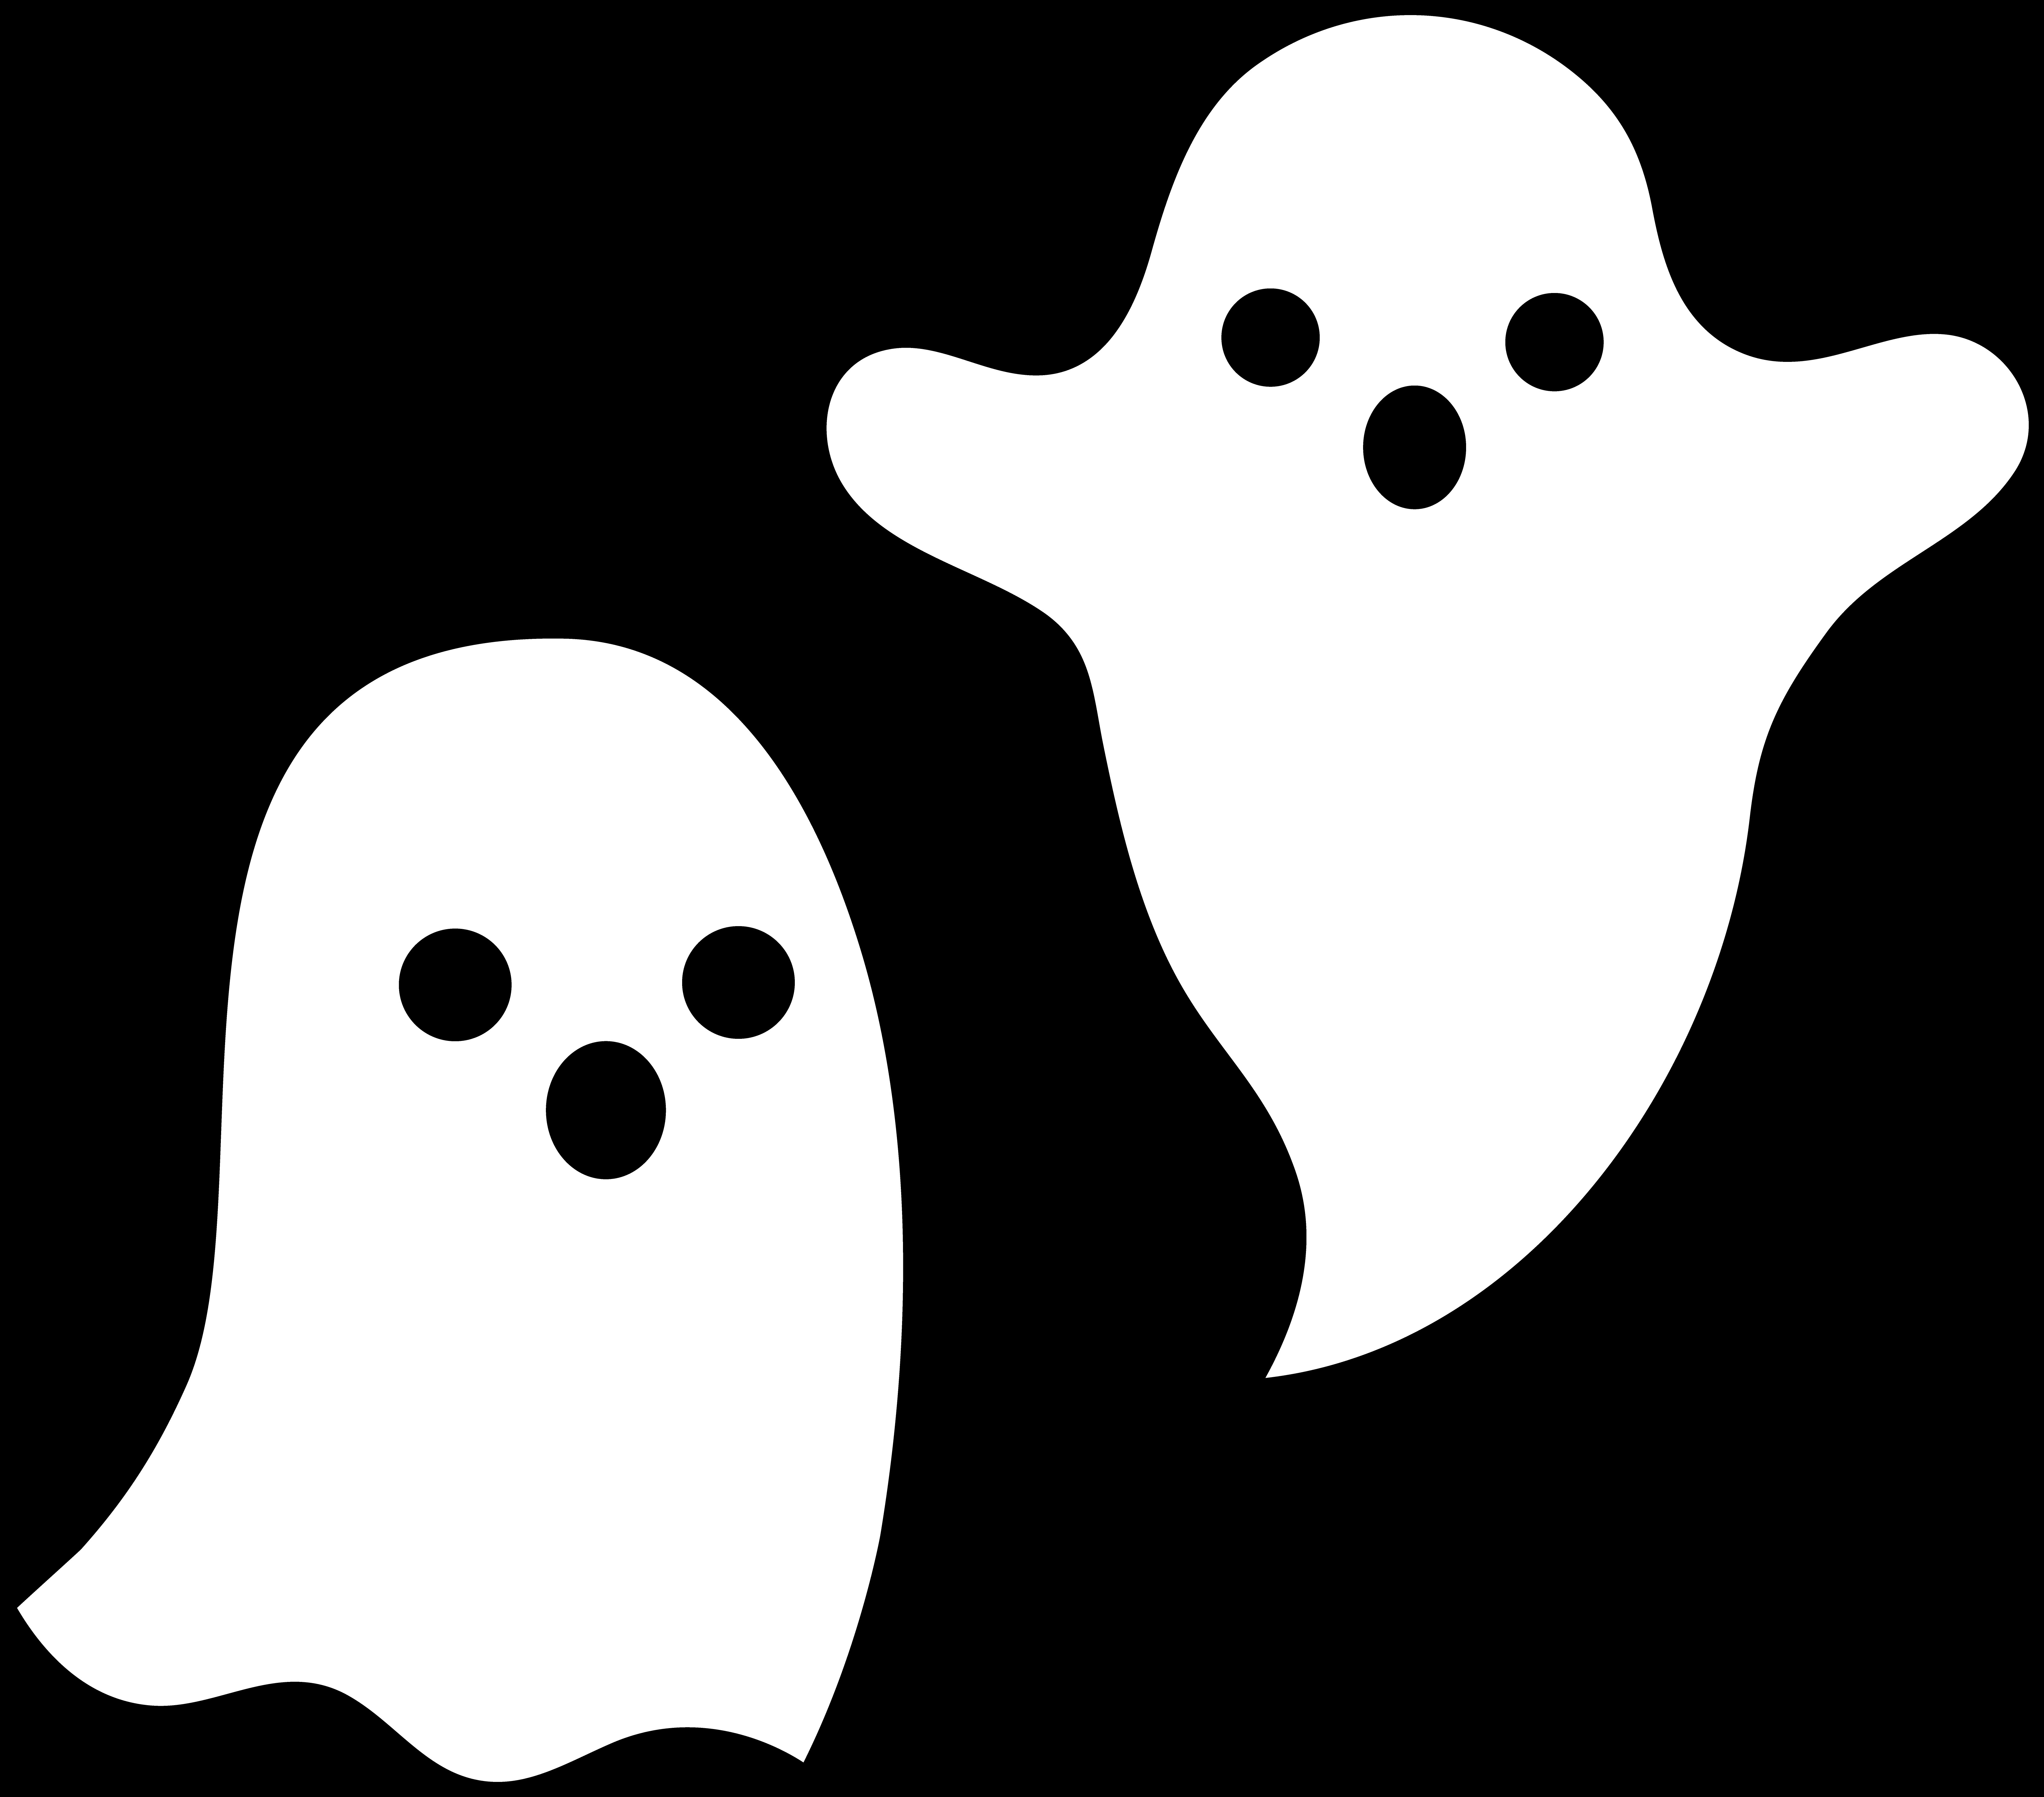 https://i2.wp.com/weknowyourdreams.com/images/ghost/ghost-06.jpg